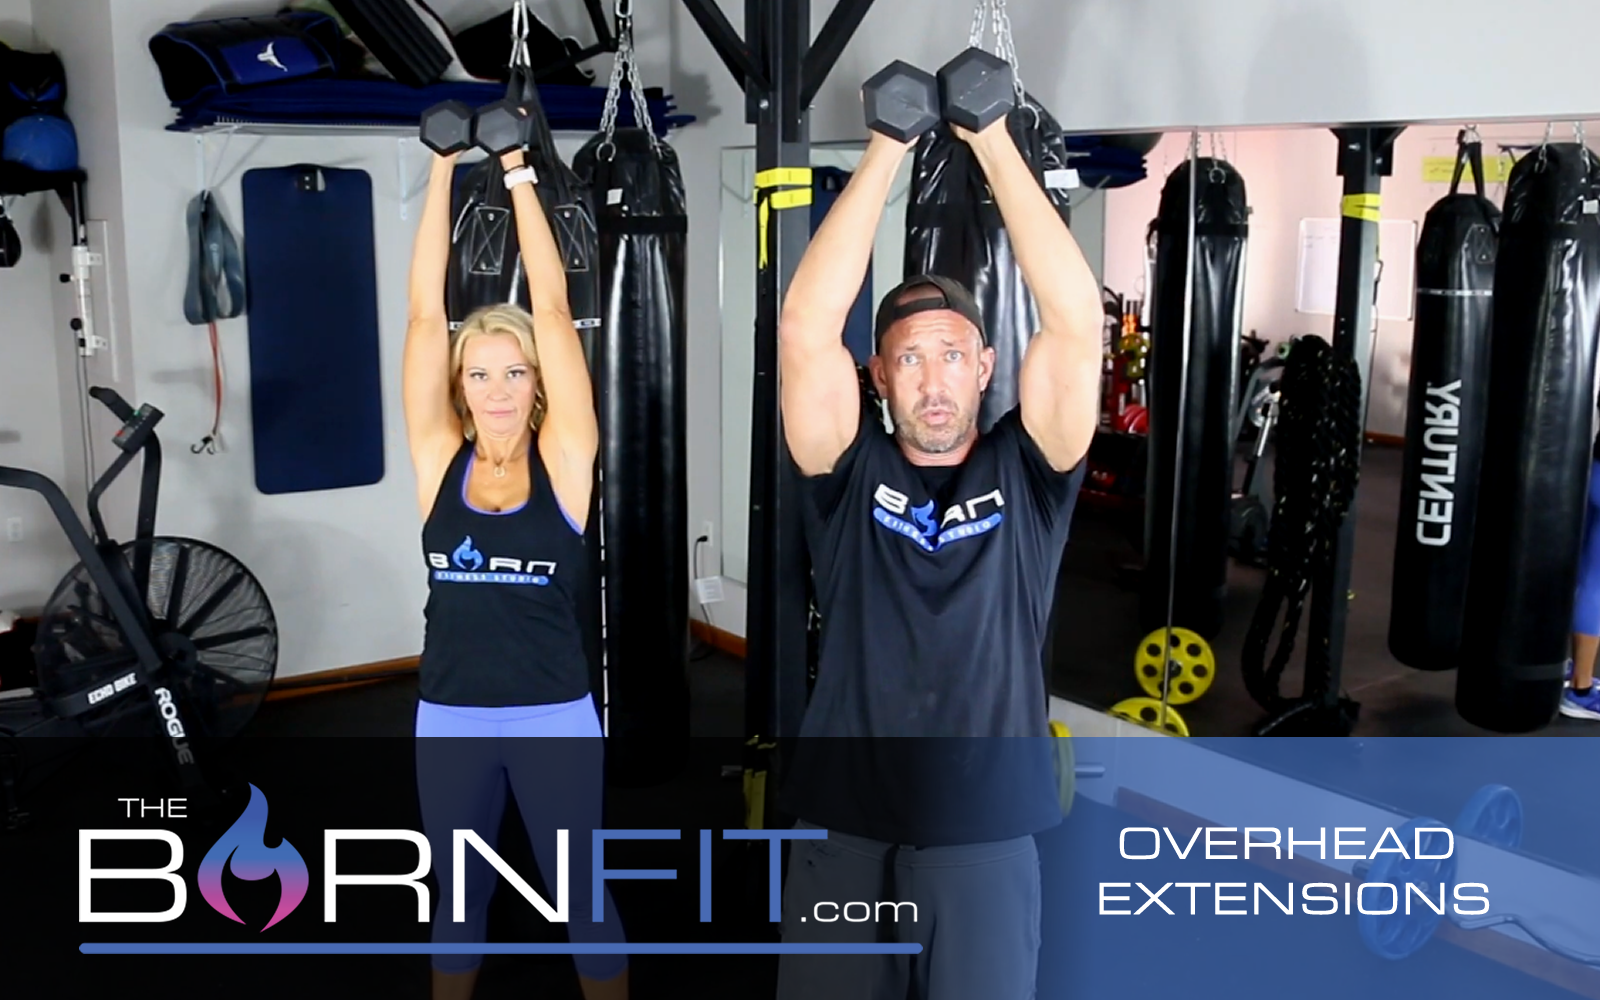 Overhead Extensions workouts